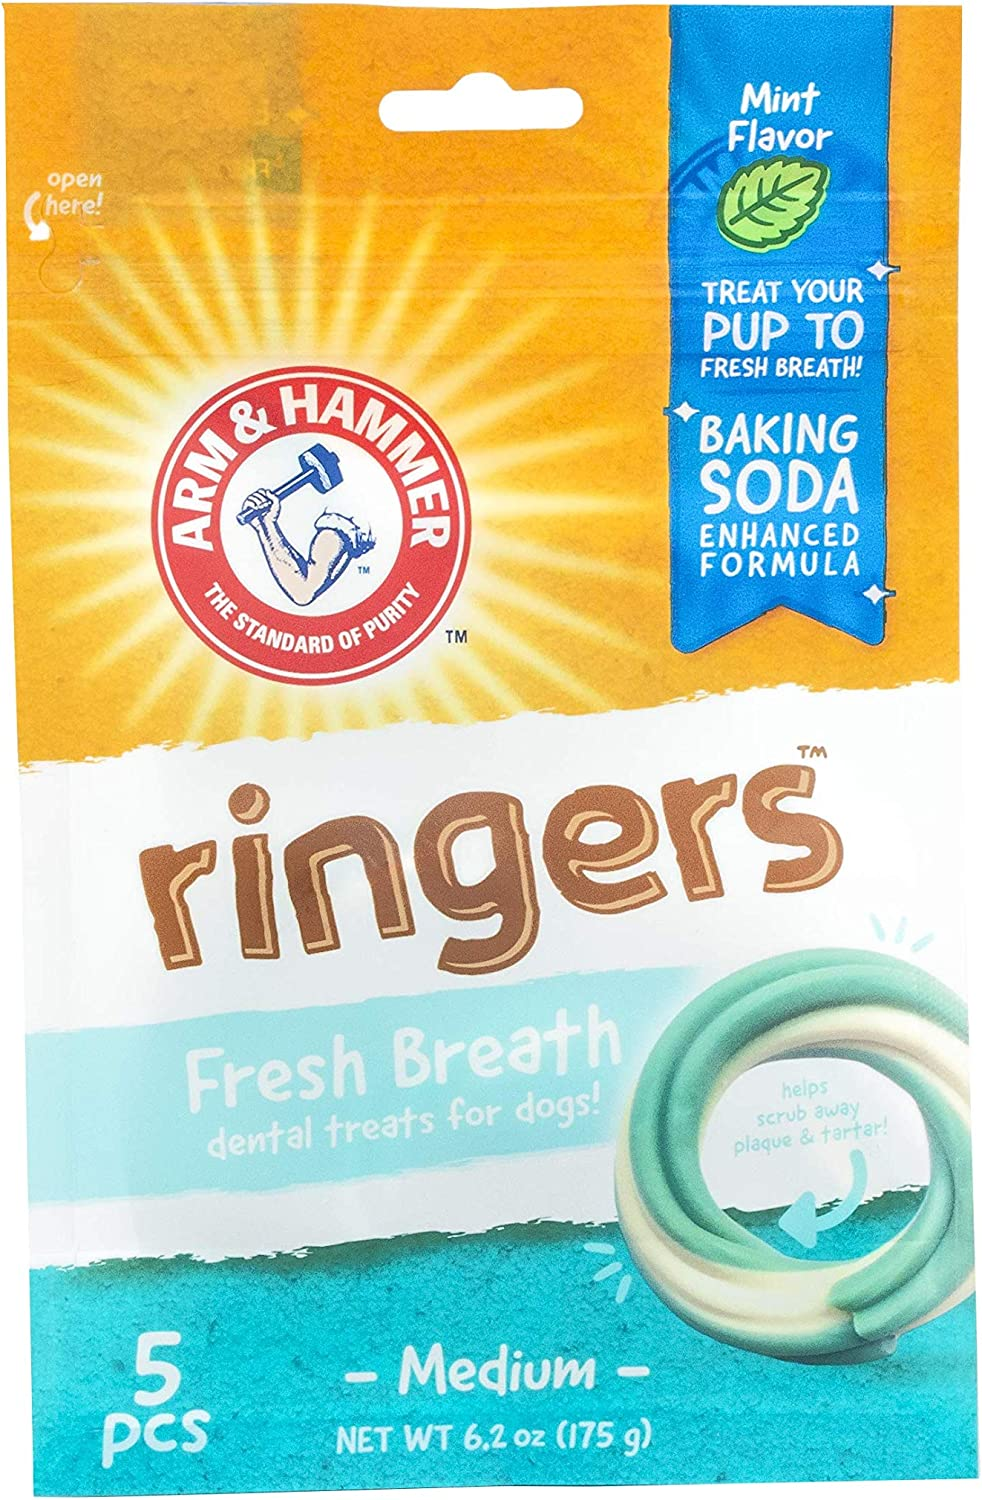 Arm & Hammer for Pets Ringers Dental Treats for Dogs | Dental Chews Fight Bad Breath, Plaque & Tartar without Brushing | Mint Flavor, 5 Pcs (FF7615)